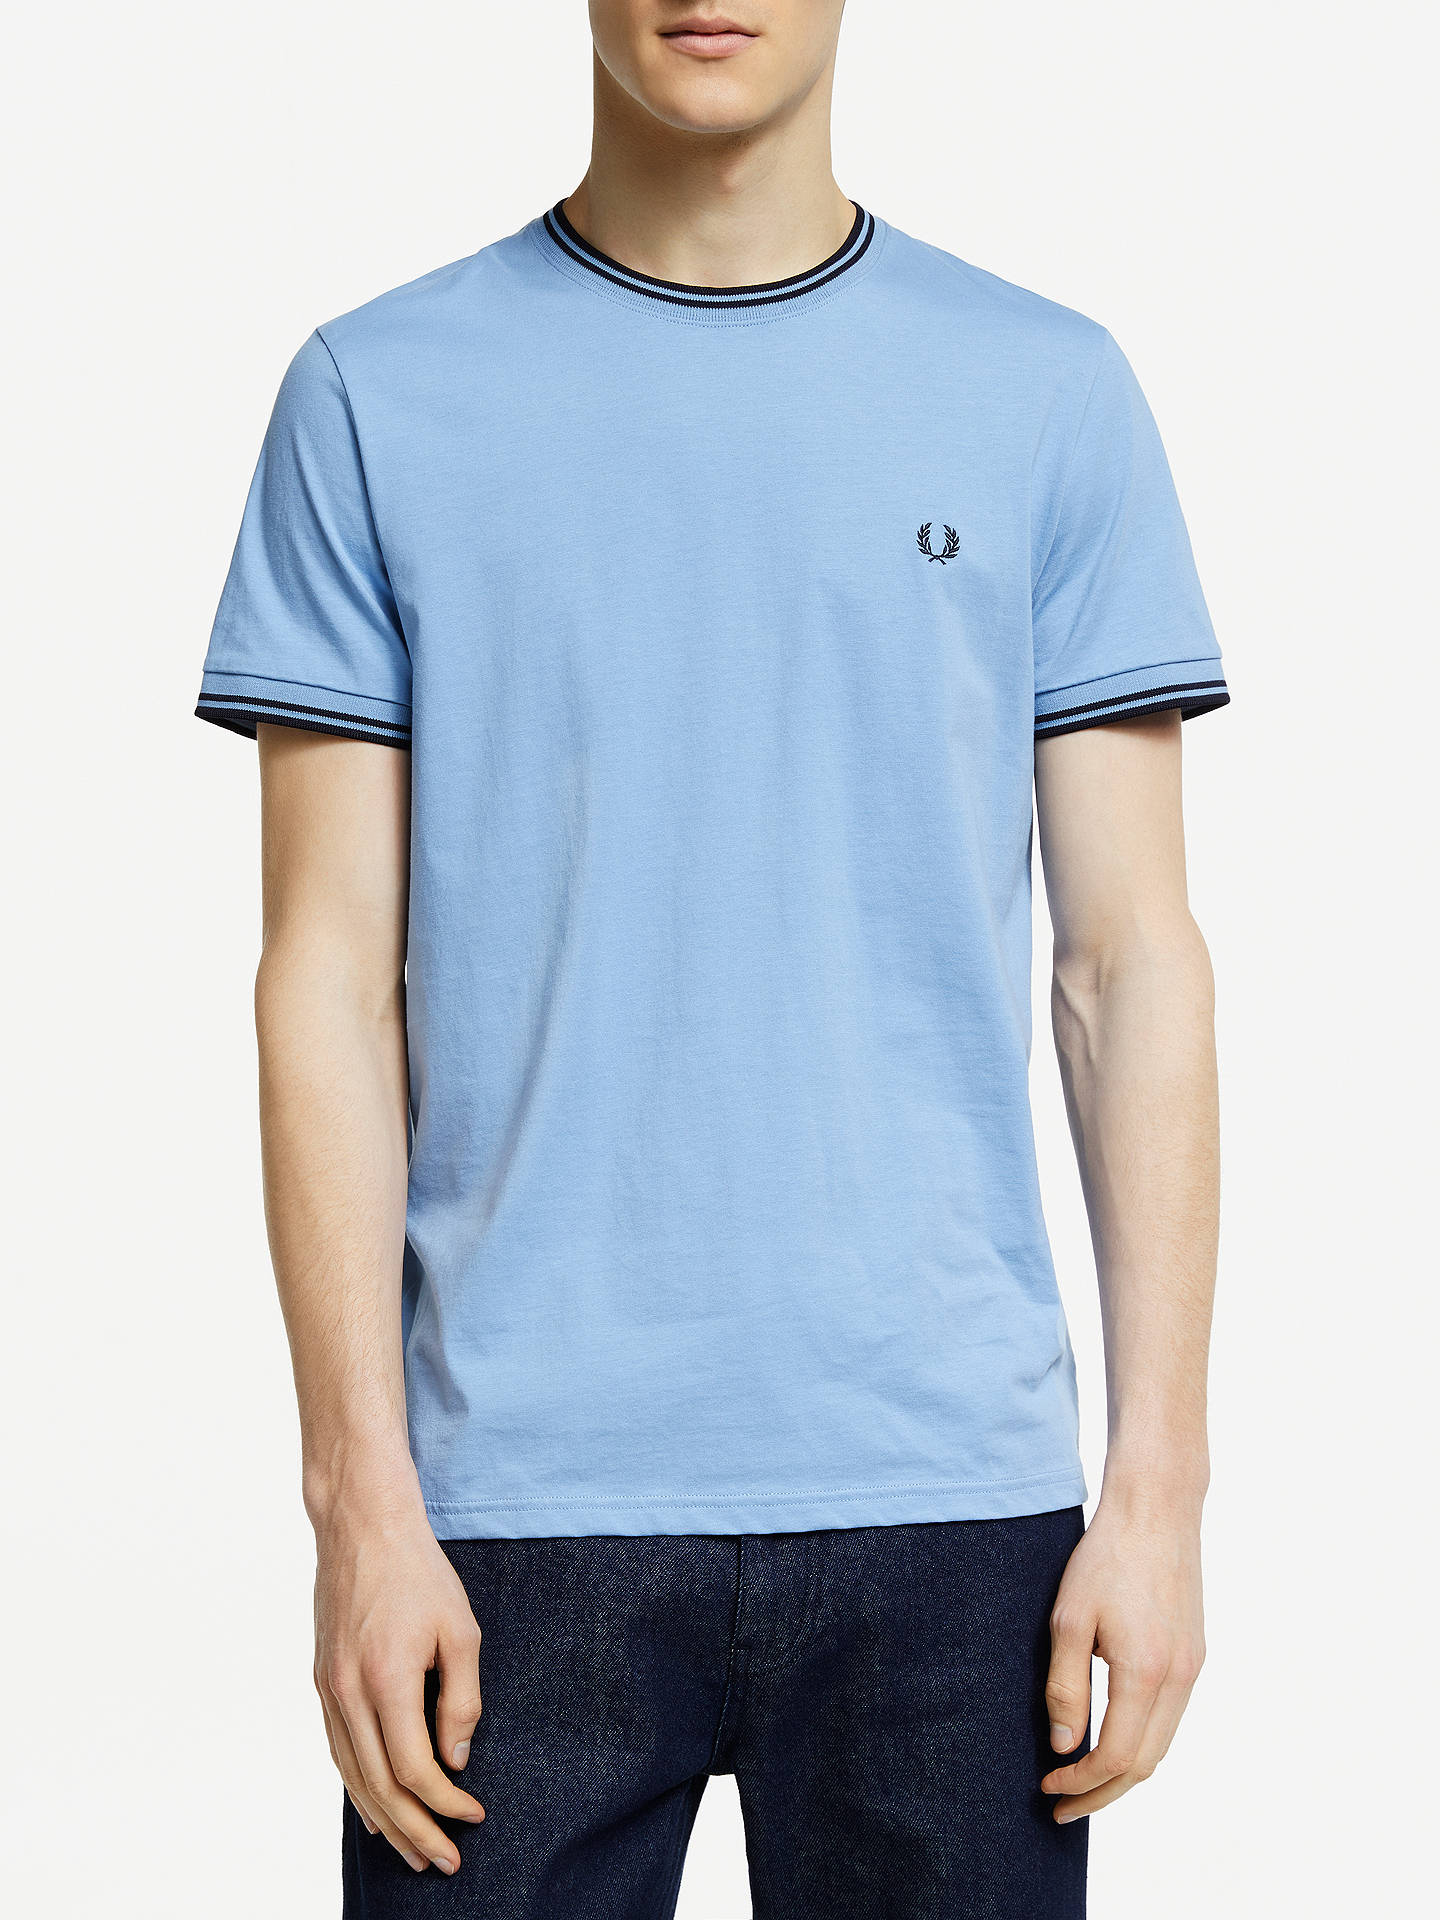 623284d3dc22 Buy Fred Perry Twin Tipped T-Shirt, Sky Blue, M Online at johnlewis ...